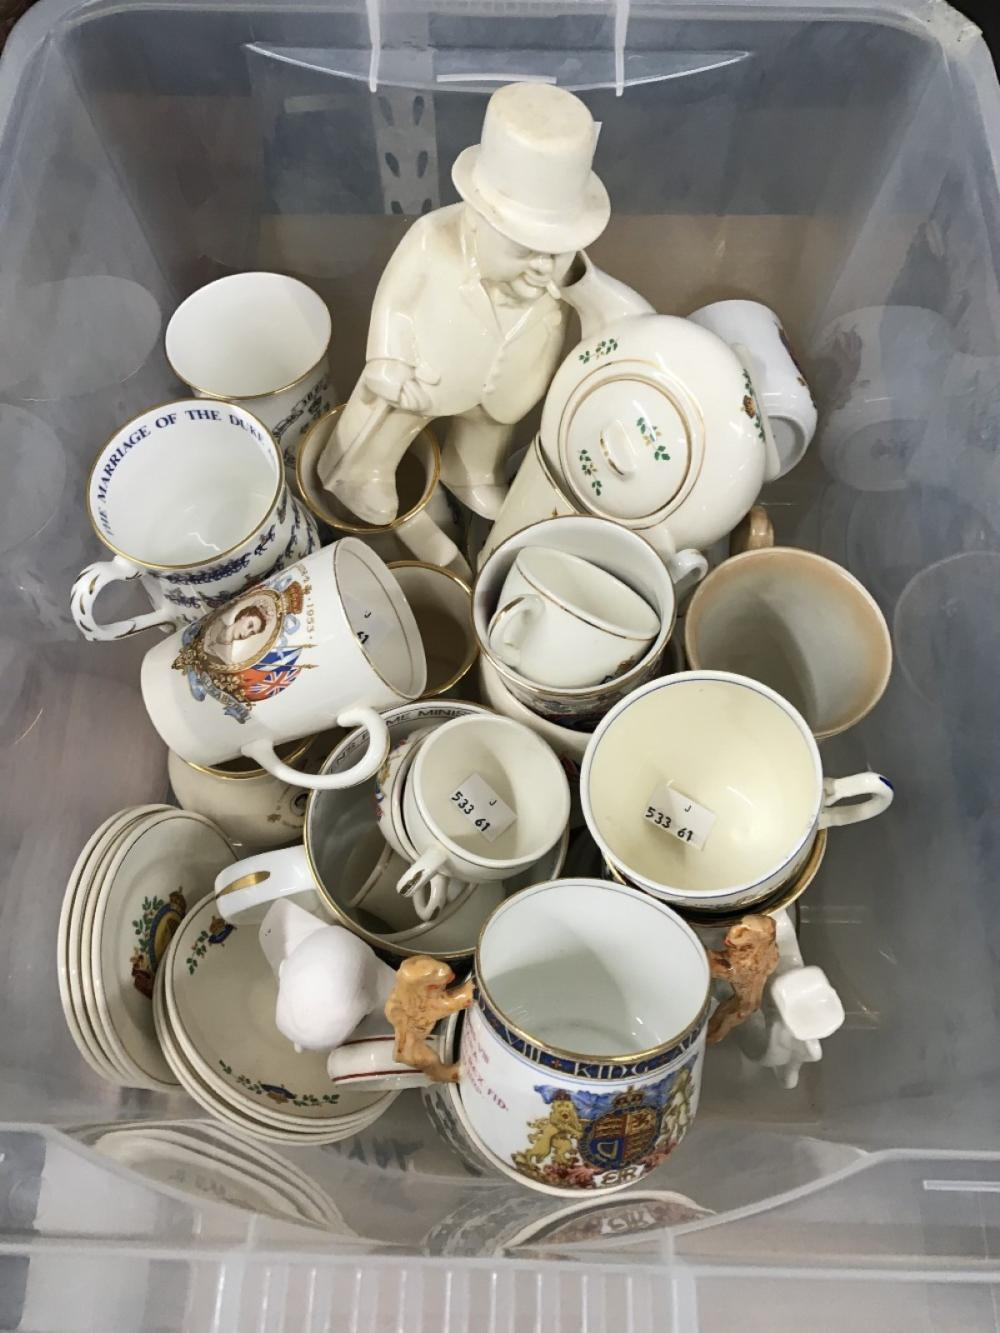 20th cent. Royal commemorative ware. Teapots, mugs, plates, figures of Queen Elizabeth II, Charles,